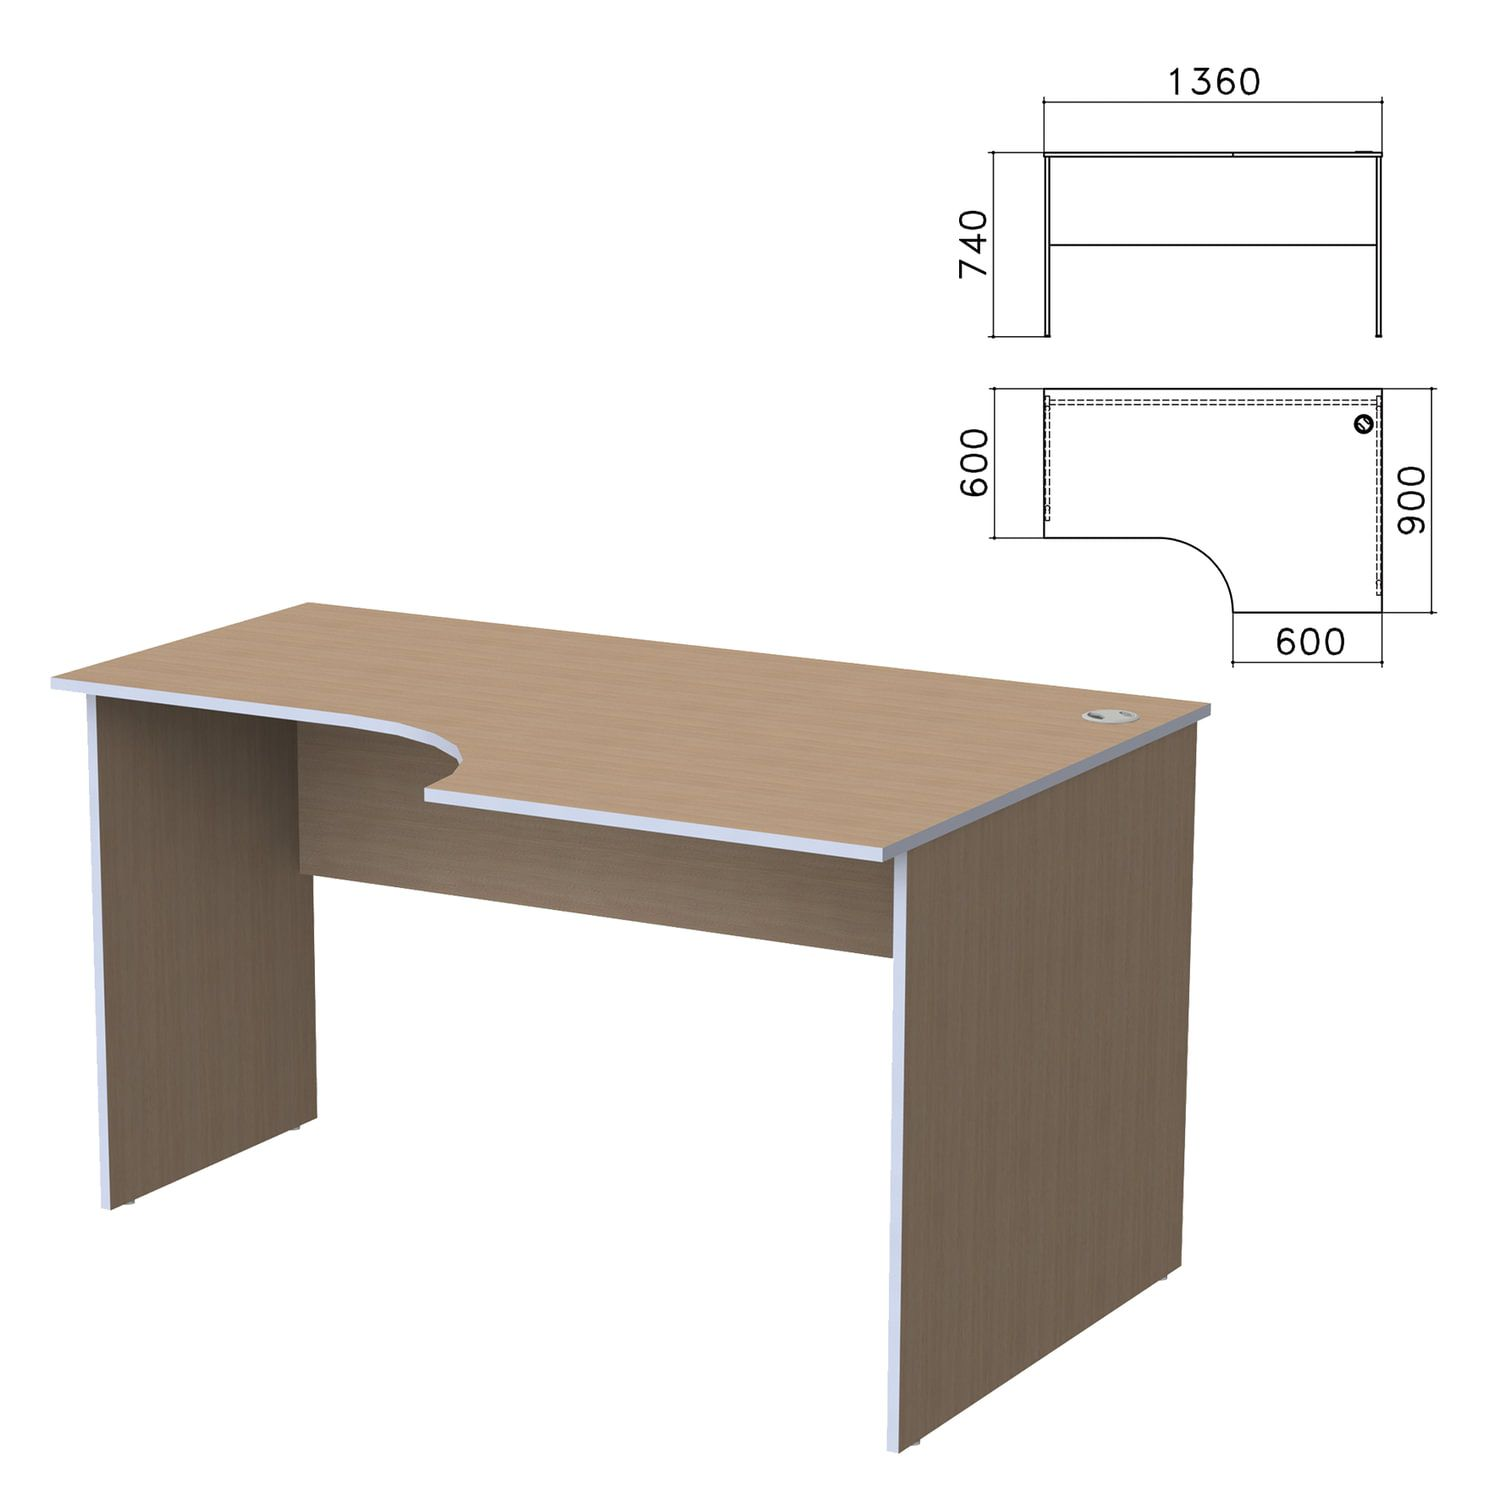 "Table written ergonomic ""Budget,"" 1360s900s740 mm, right, nut Ontario"